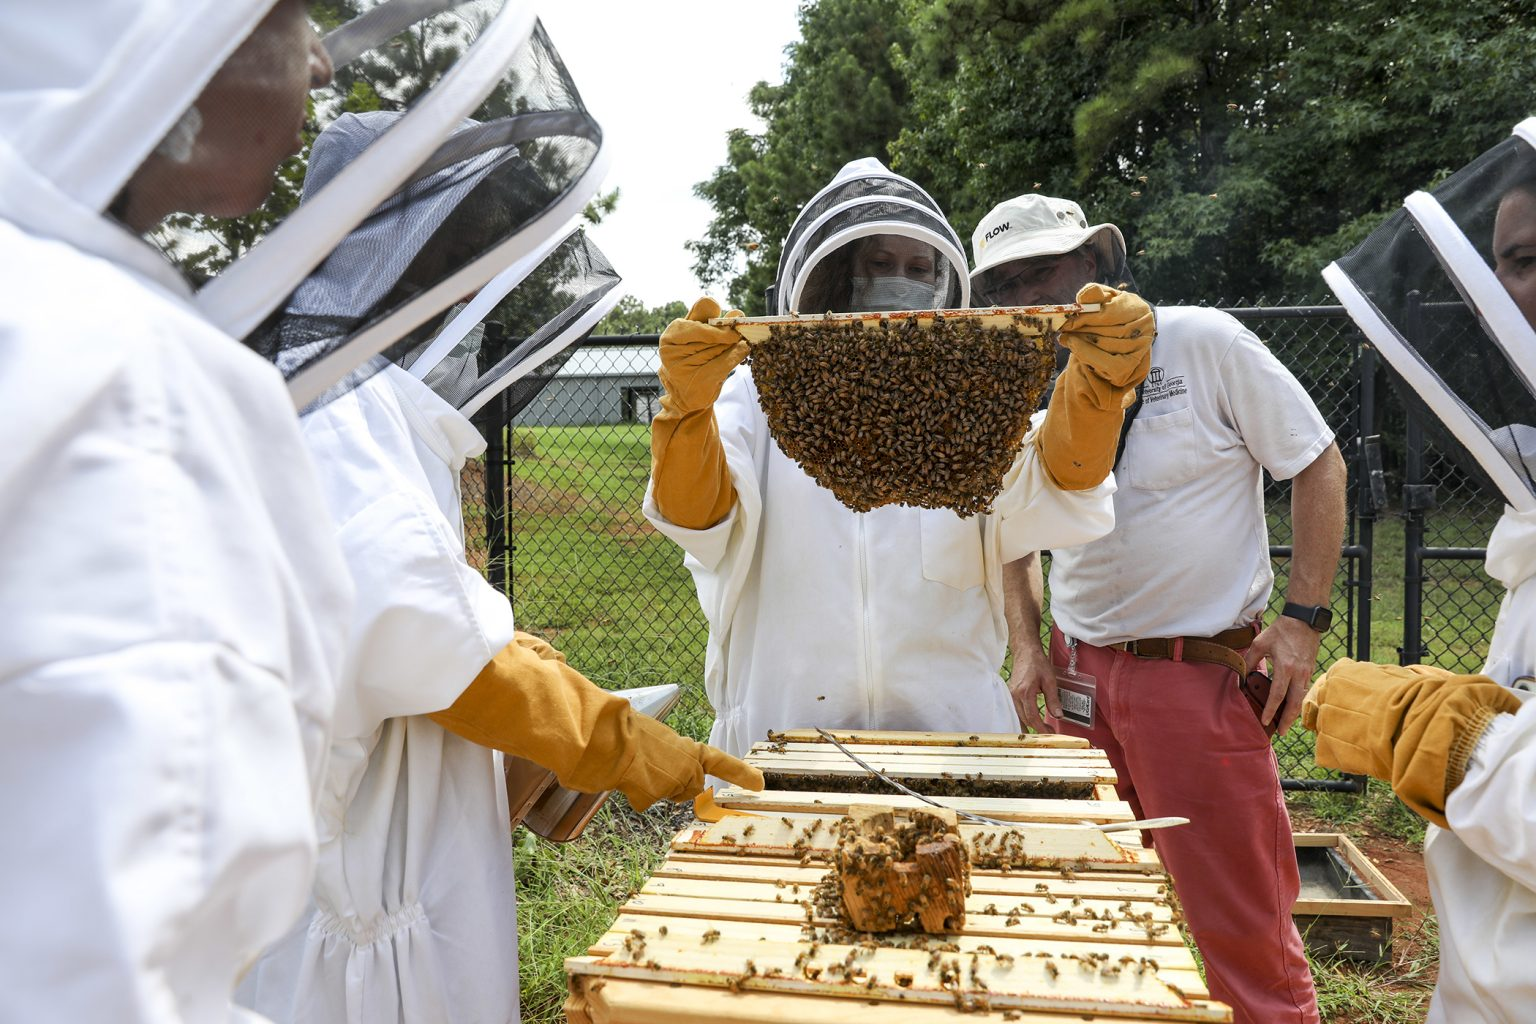 (Center, L-R) Resident Dr. Megan Partyka and Dr. Joerg Mayer inspect a beehive frame during a beekeeping class. (Photo by Dorothy Kozlowski/UGA)